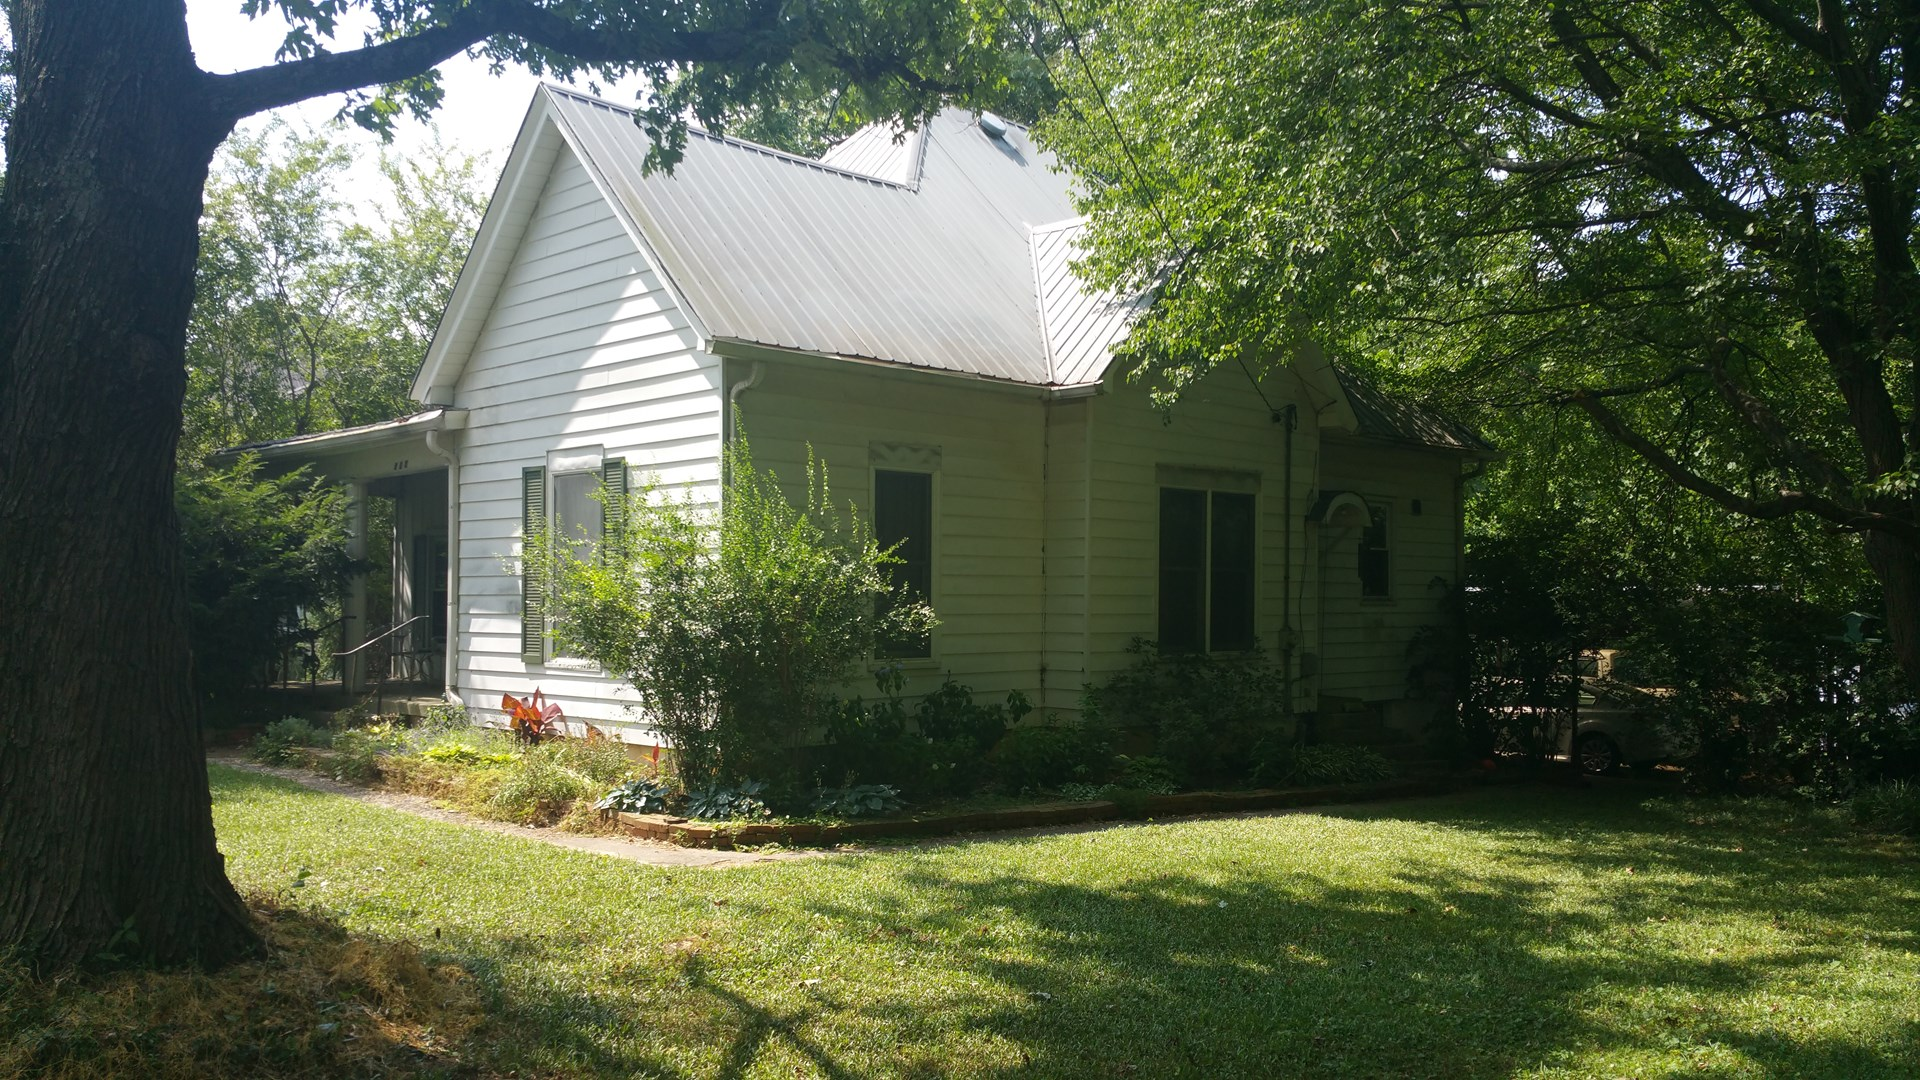 Beautiful 3 bedroom 2 bath home for sale in Franklin Ky.